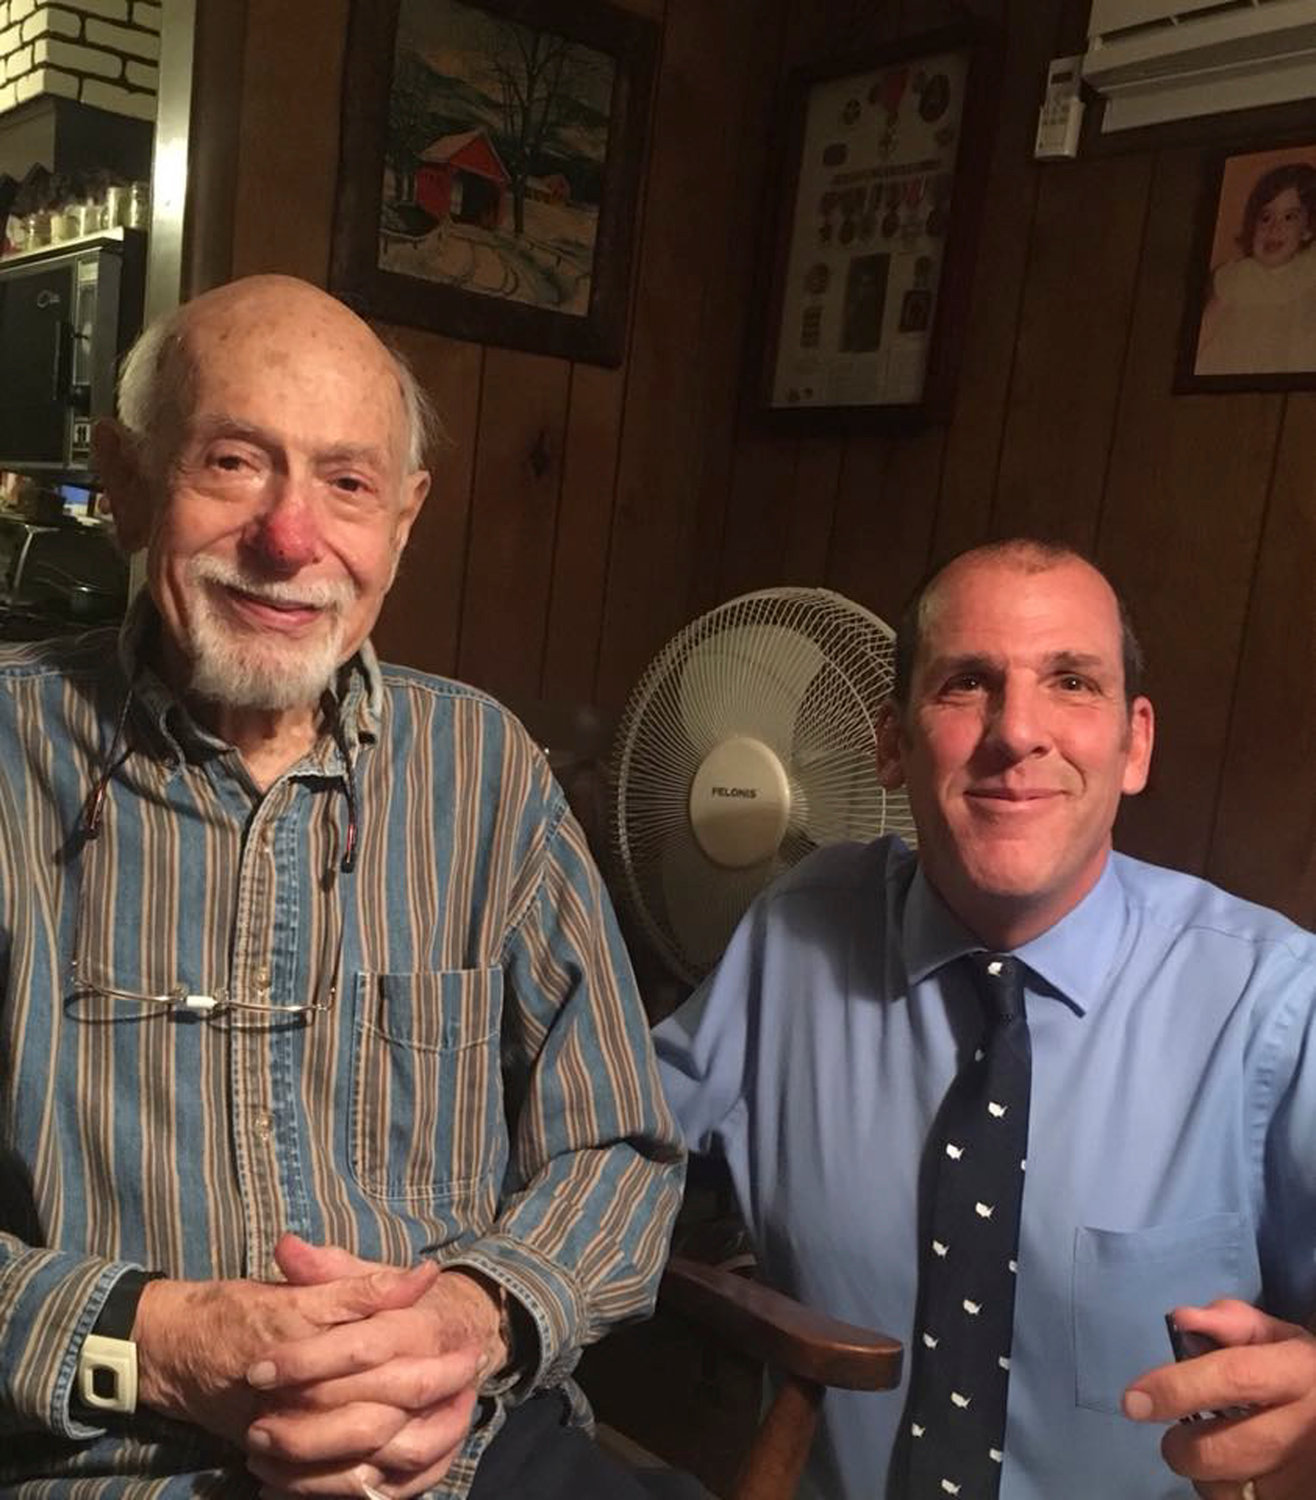 Cutler with amateur historian and Central High School social studies teacher Chris Critchley shorly before Cutler's death in 2018.